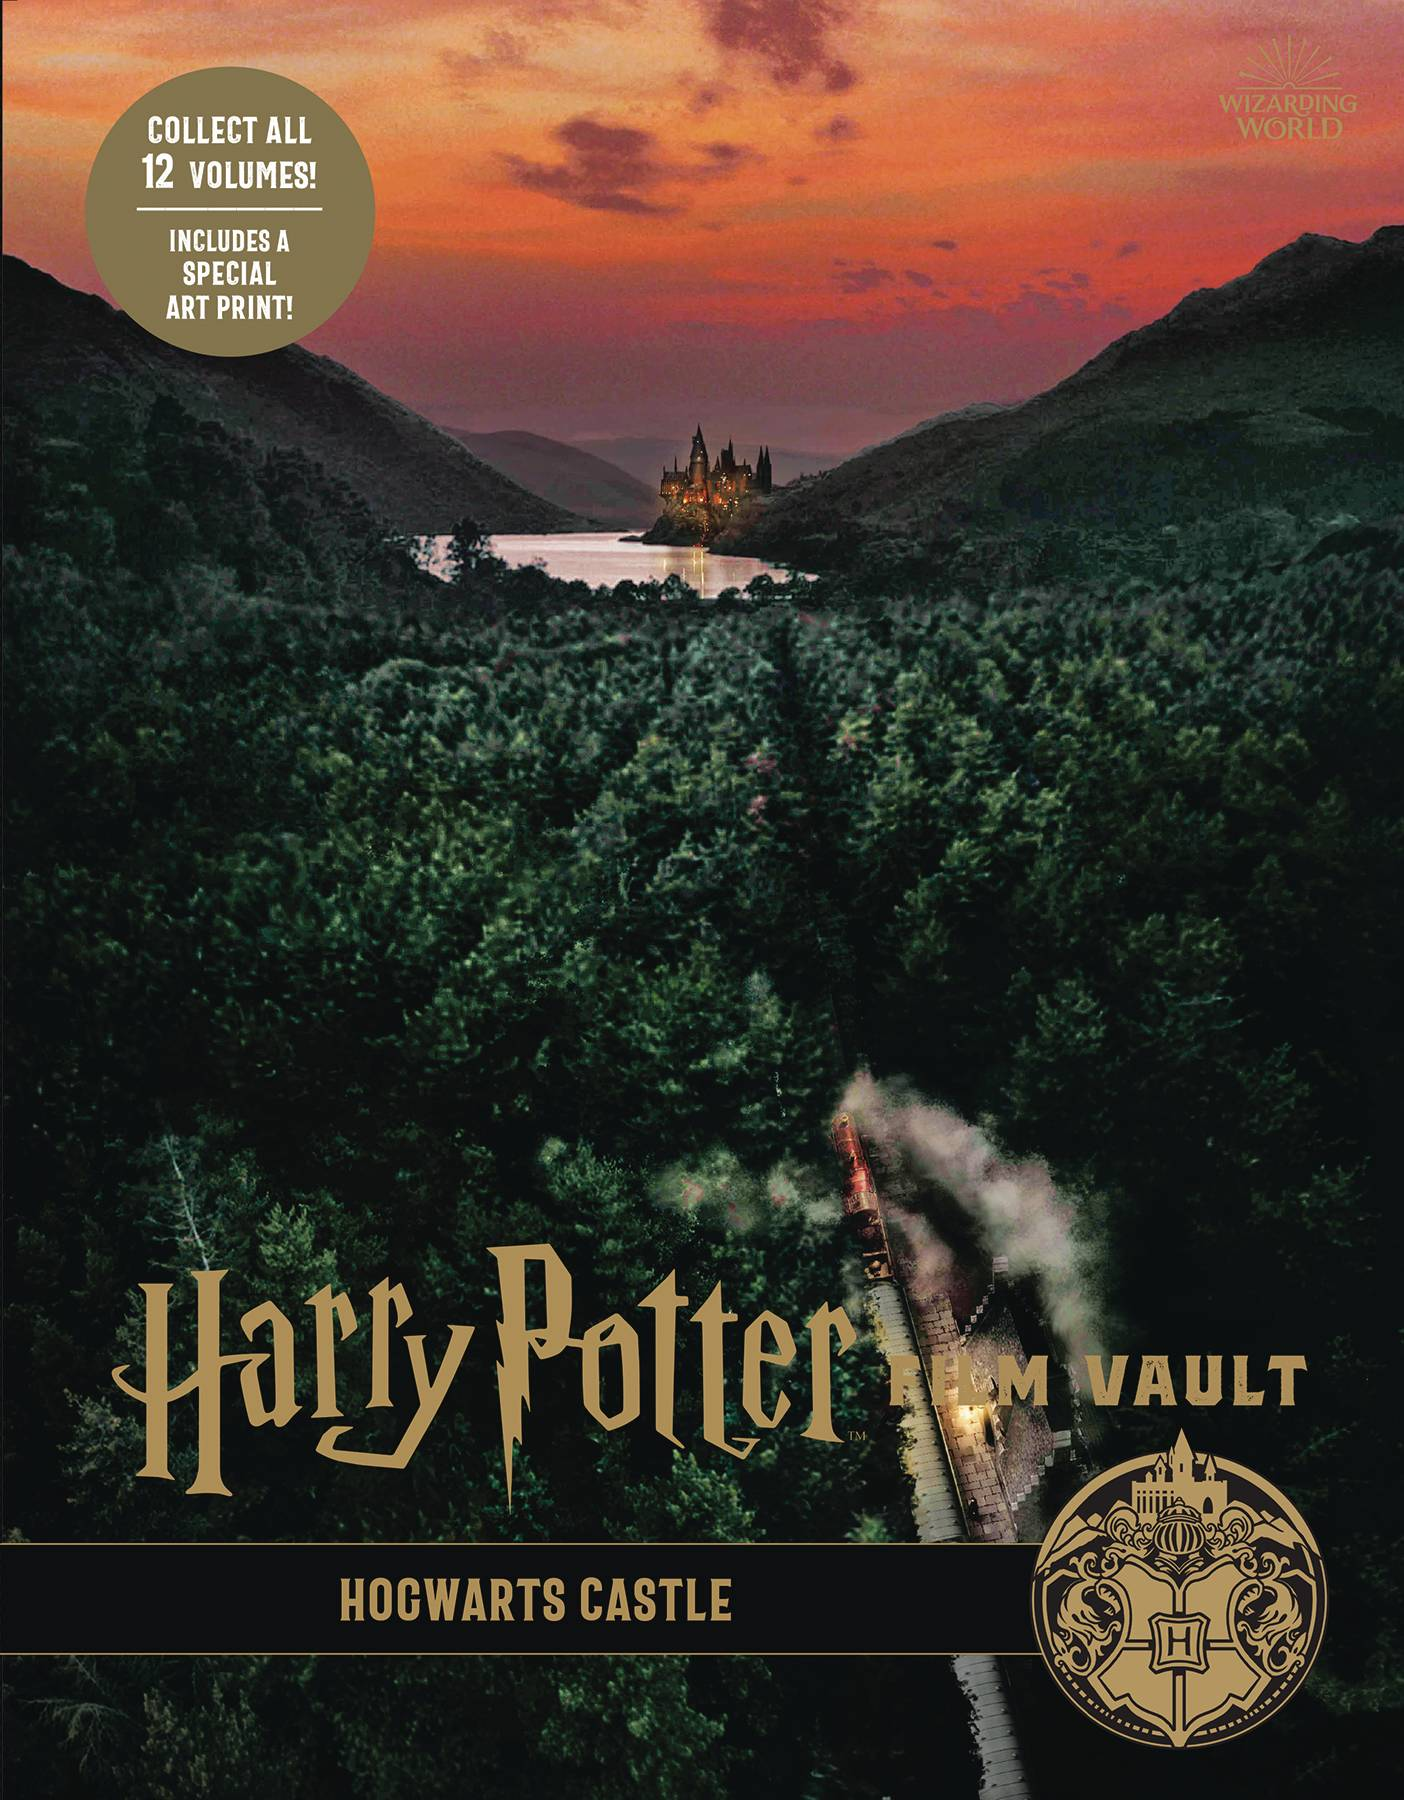 HARRY POTTER FILM VAULT HC VOL 06 HOGWARTS CASTLE